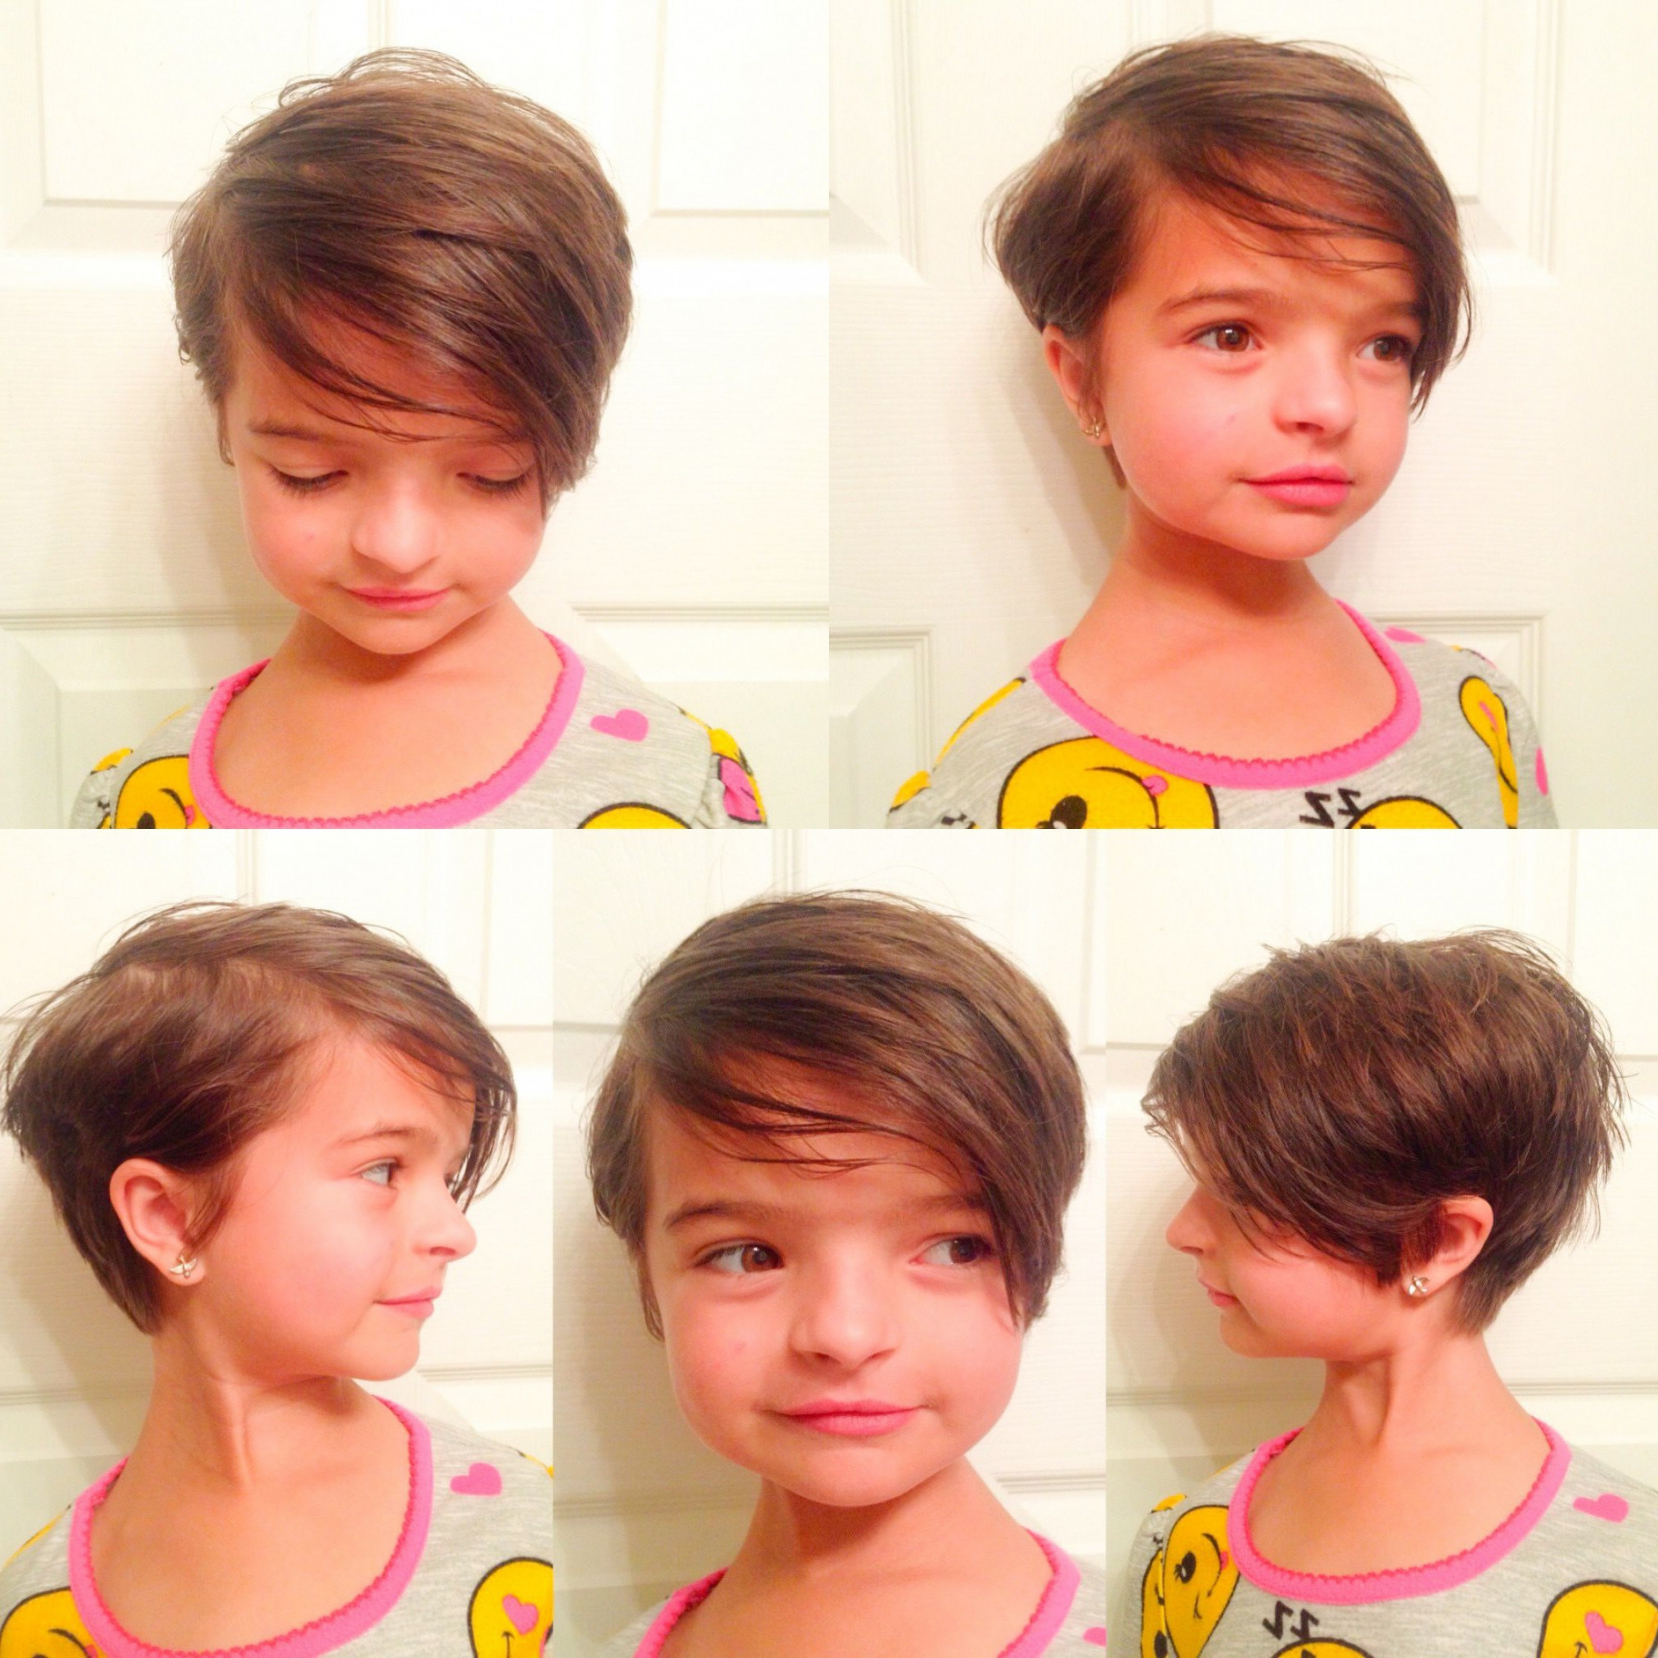 Unique Pixie Cuts For Kids Short Hairstyles For Little Girls | Best With Little Girl Short Hairstyles Pictures (View 22 of 25)